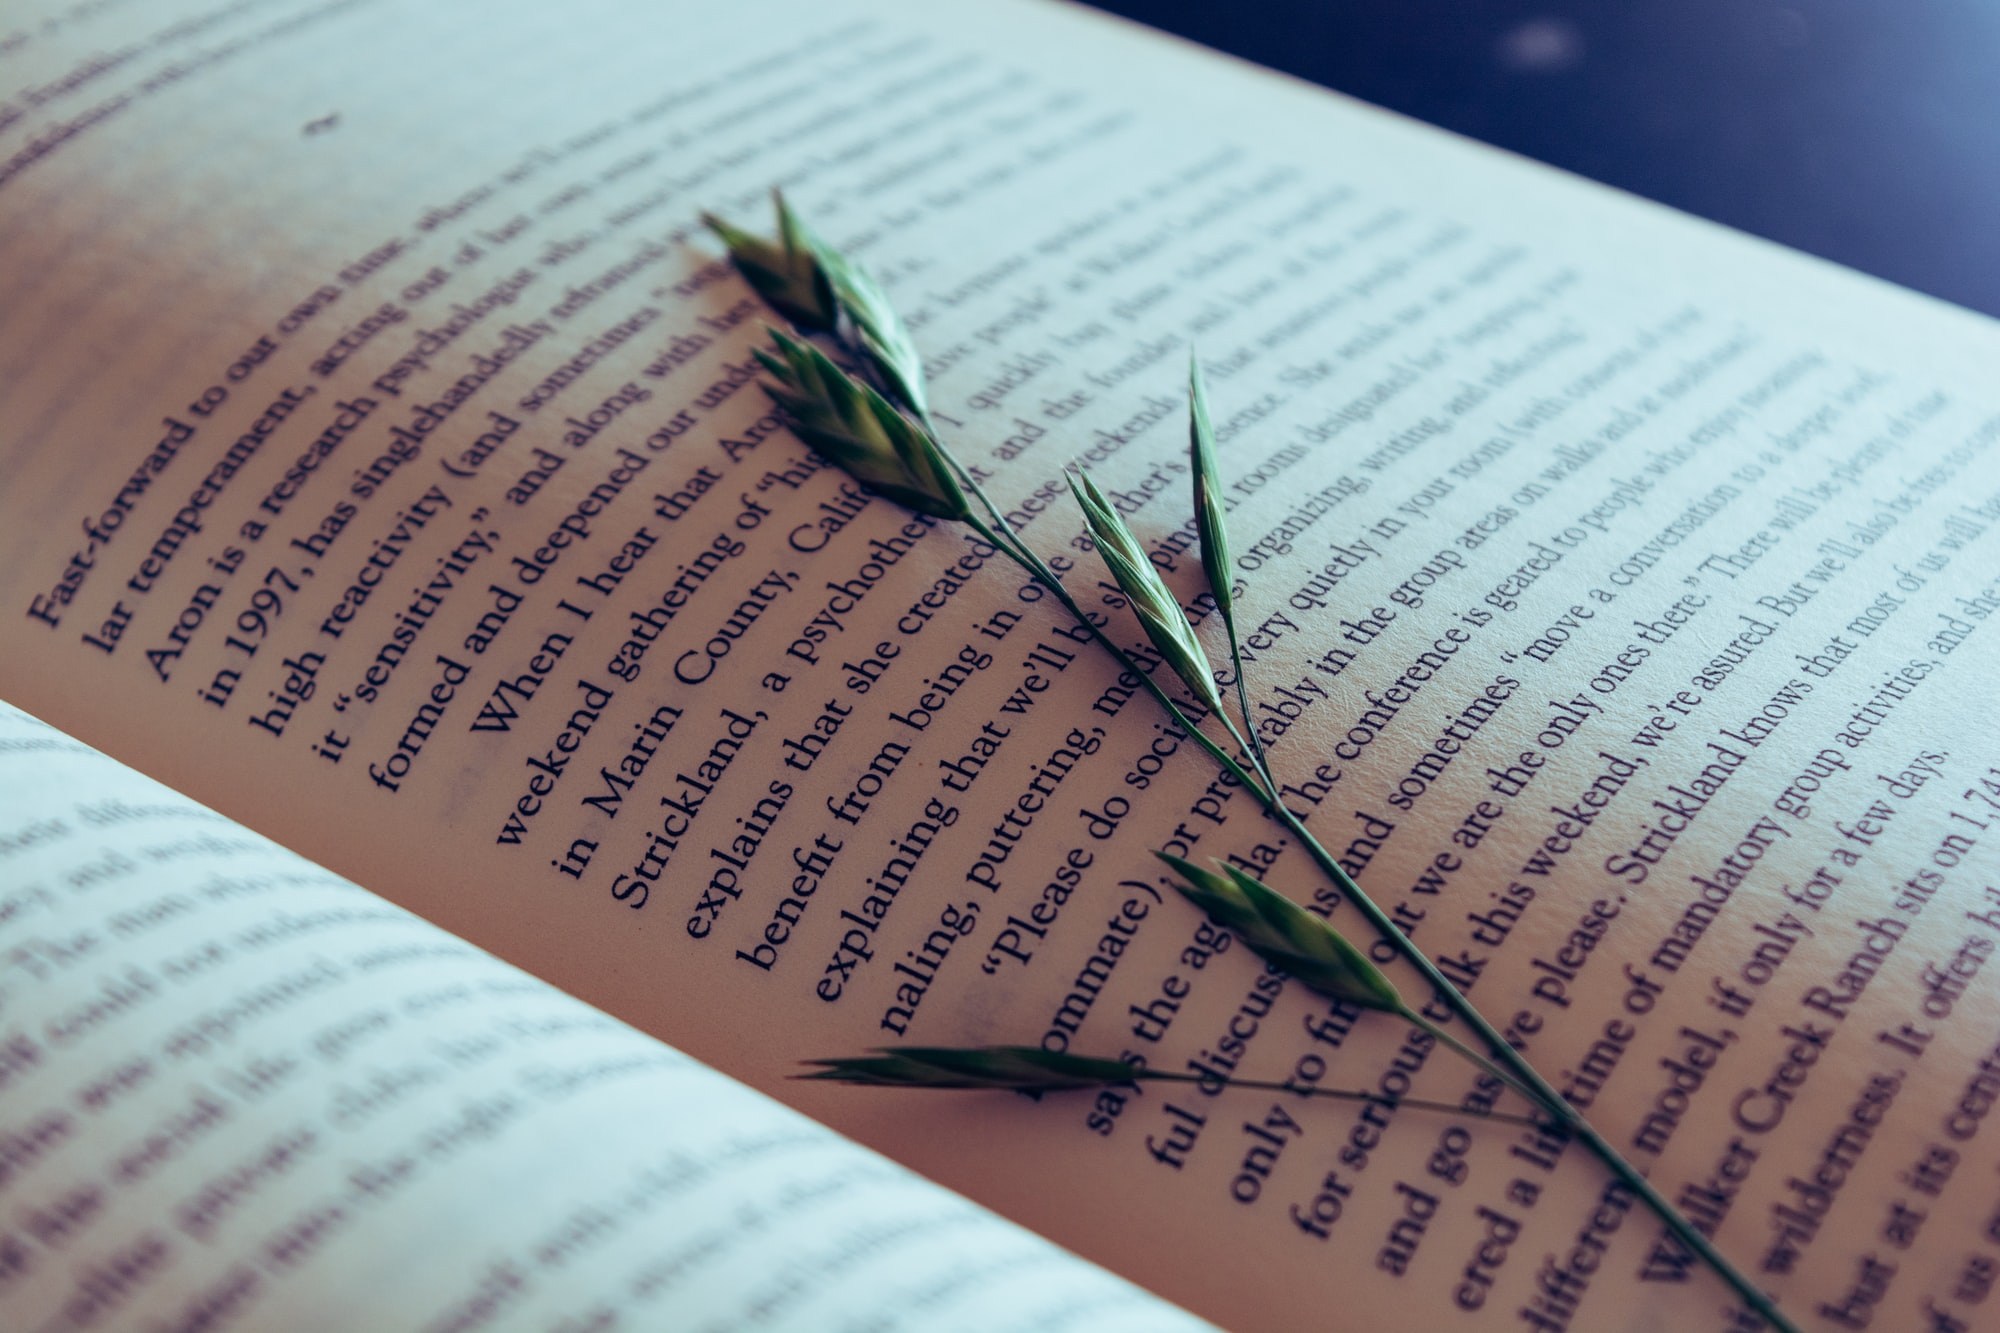 A novel splayed open. The stalk of a plant is pressed between the pages.